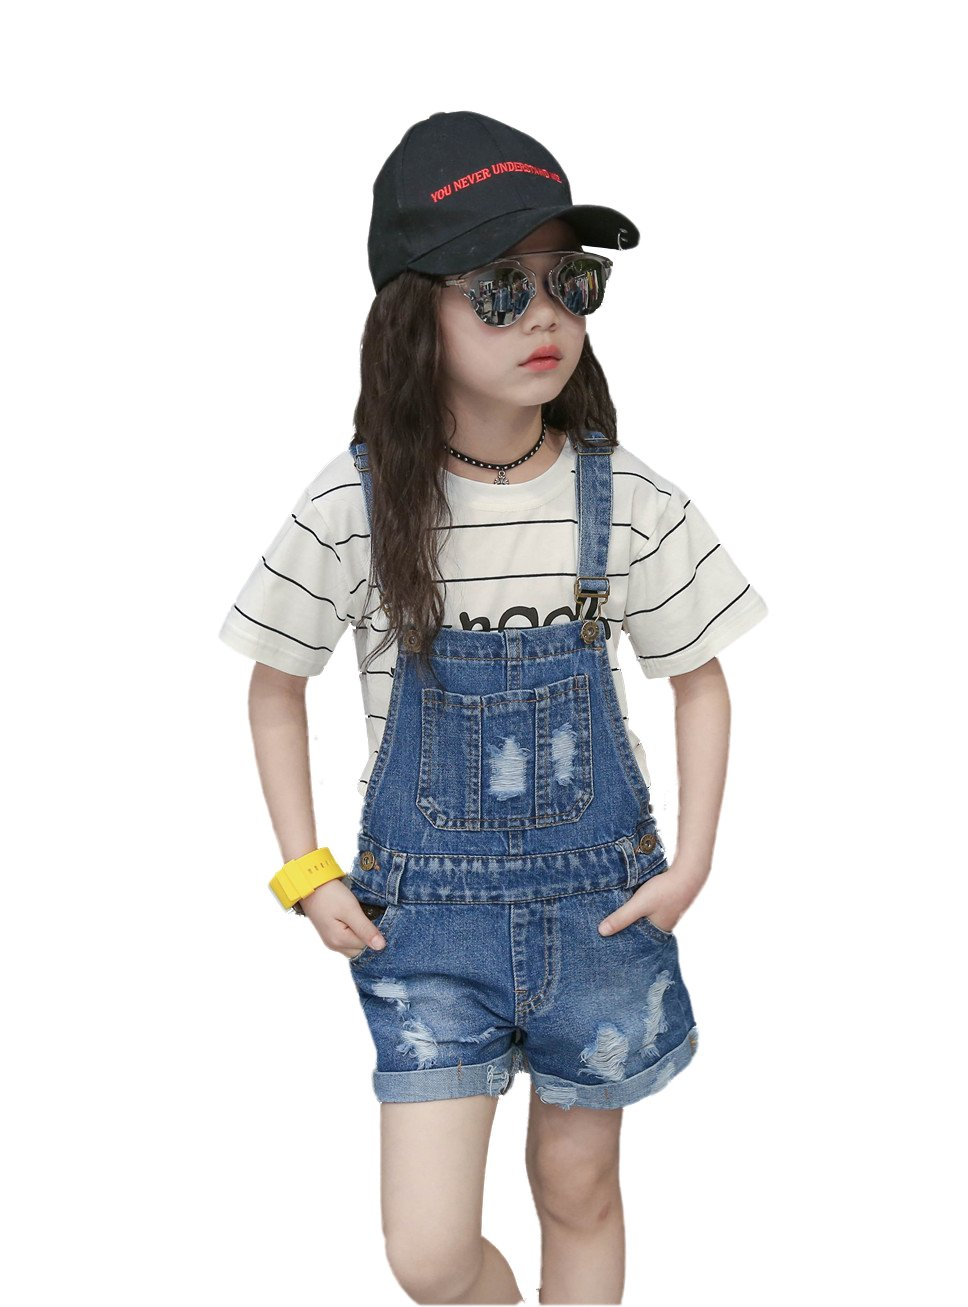 Kidscool Girls Big Bibs Ripped Summer Jeans Shortalls,Light Blue,6-7 Years